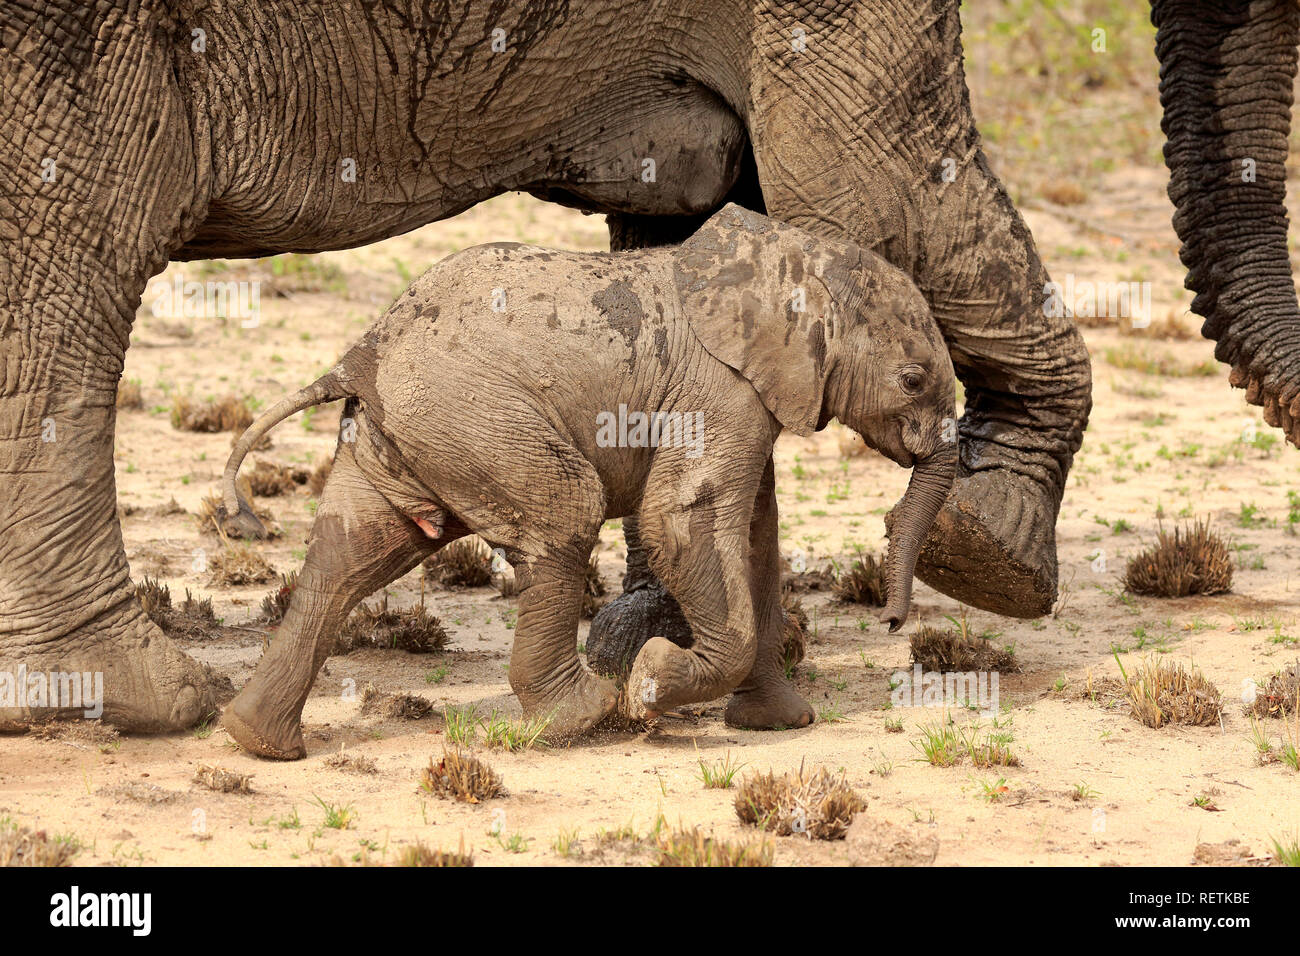 African Elephant, adult female with young, Sabi Sand Game Reserve, Kruger Nationalpark, South Africa, Africa, (Loxodonta africana) - Stock Image